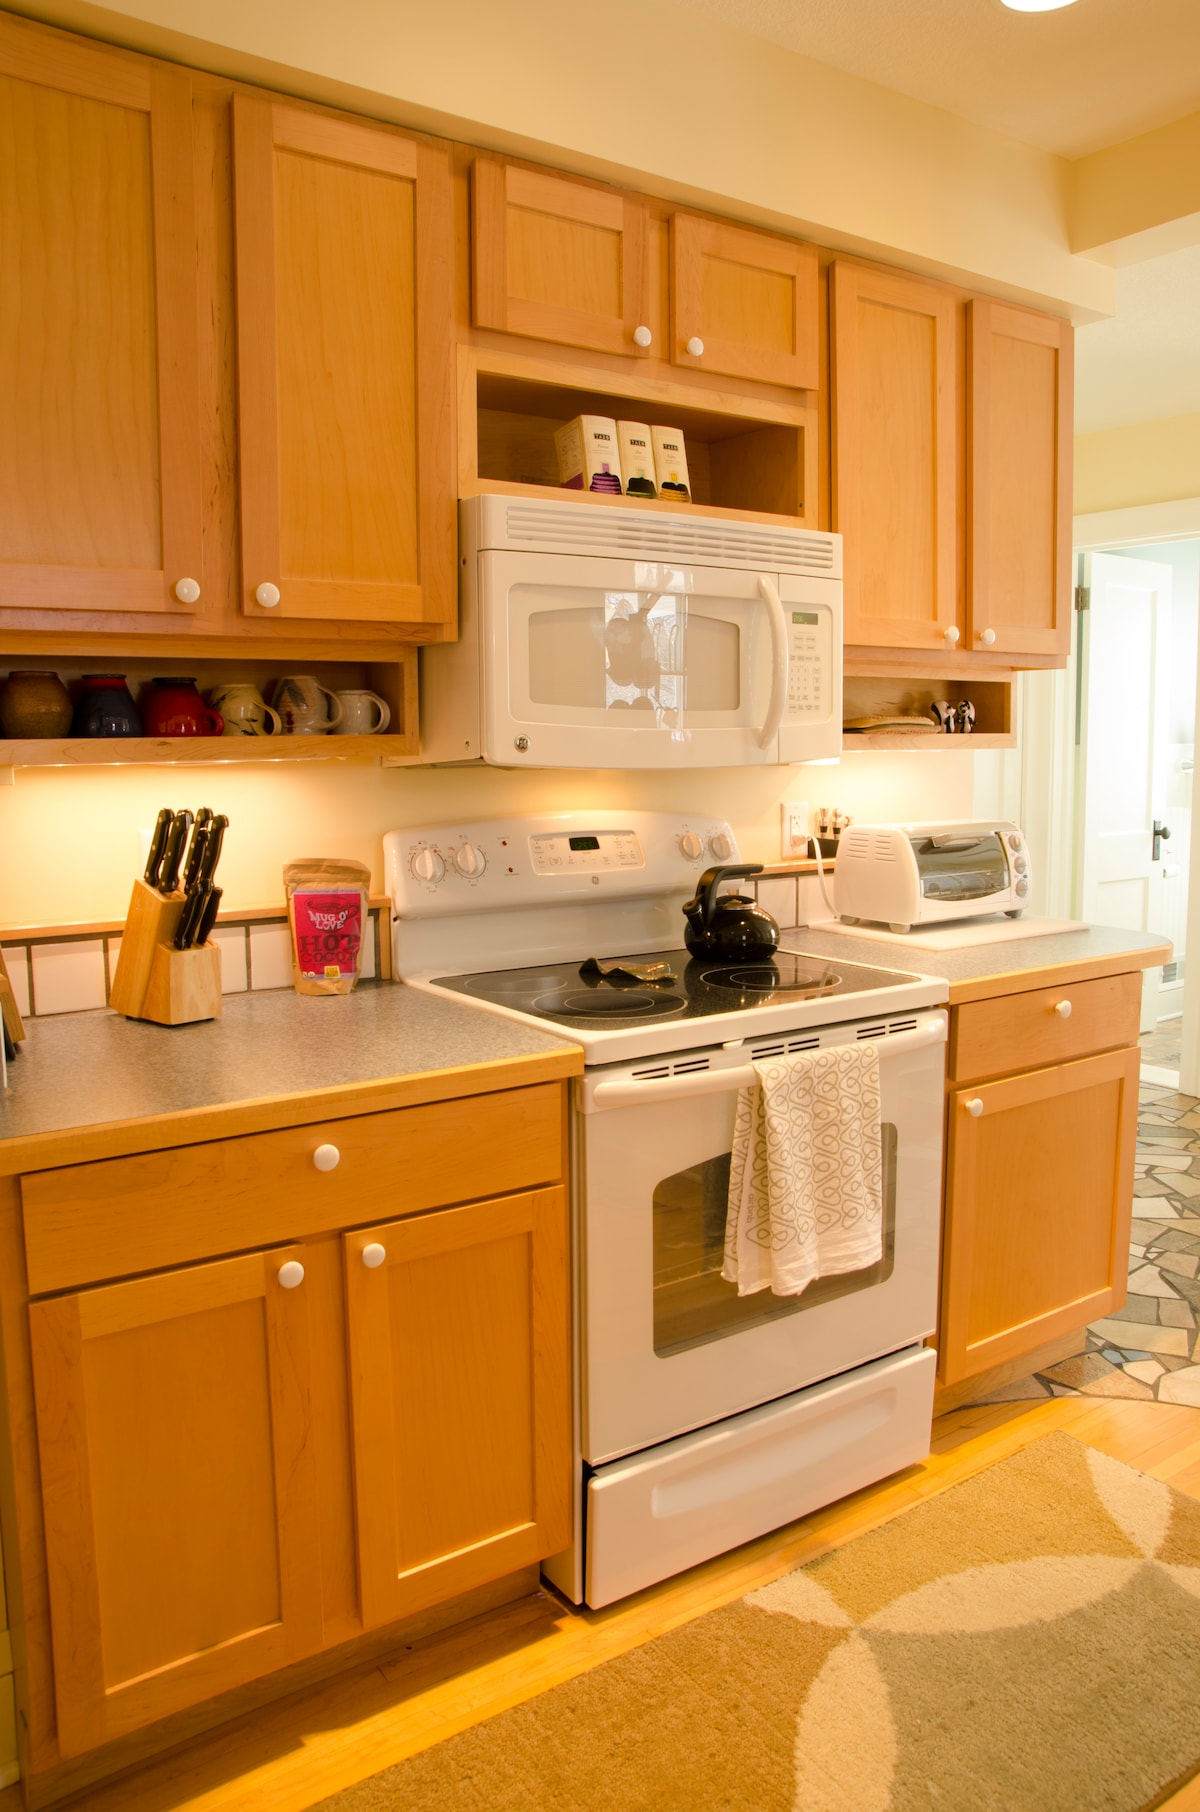 What do you need to make your own delicious meals? This kitchen has it!